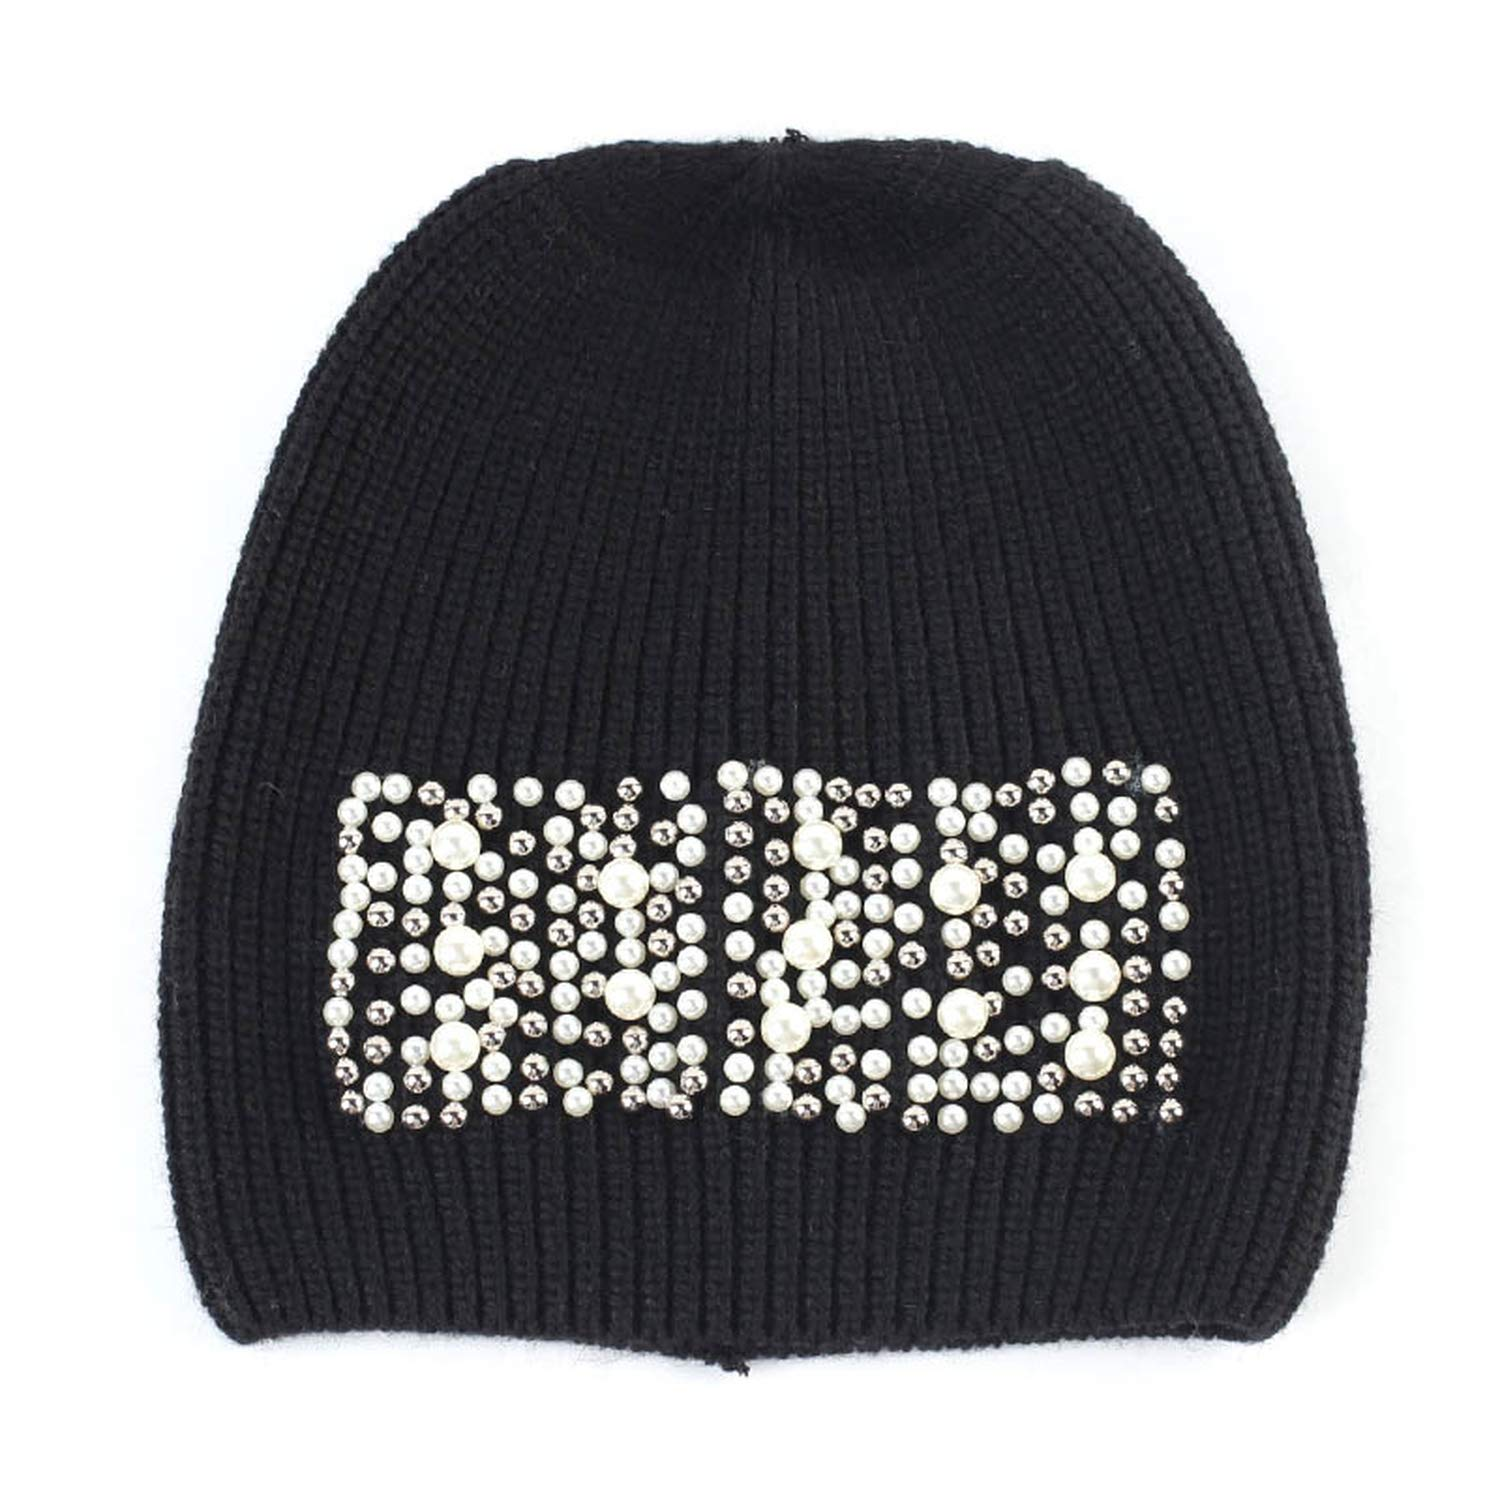 Womens Beanie Hats with Applique Winter Knitted Cashmere Pearl Slouchy Beanies Skullies Hats